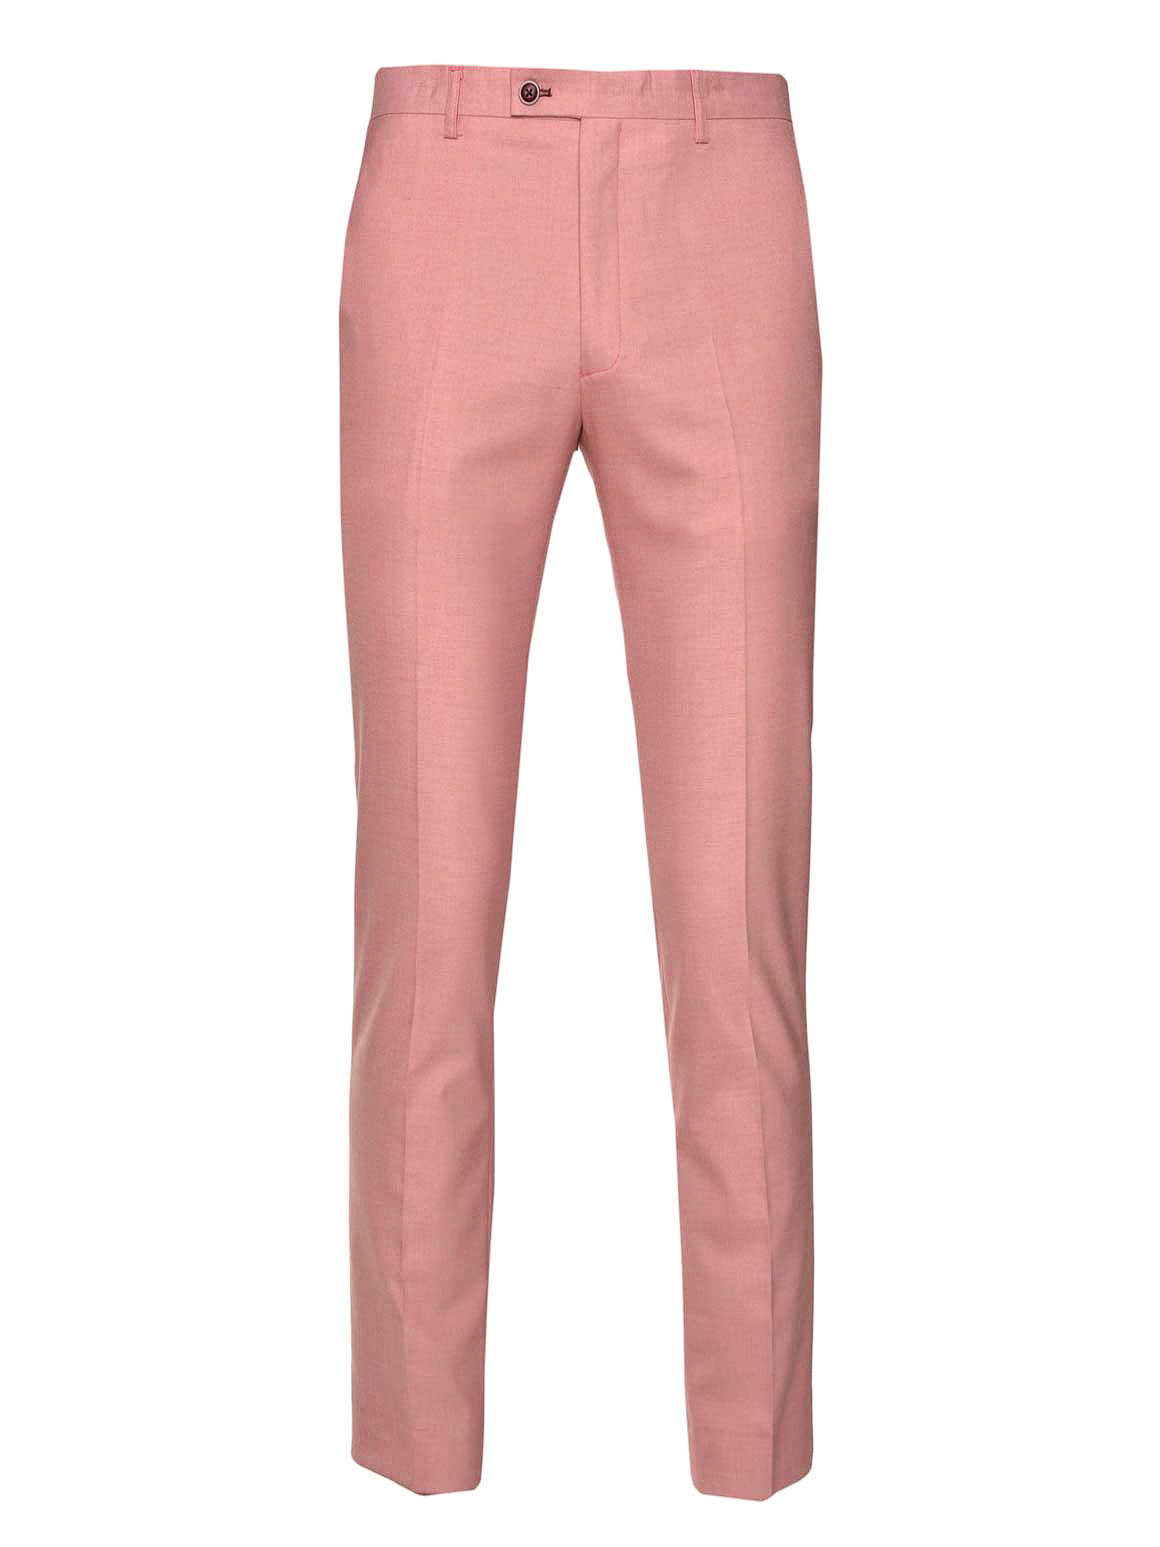 Camden Skinny Fit Pants  - Pink